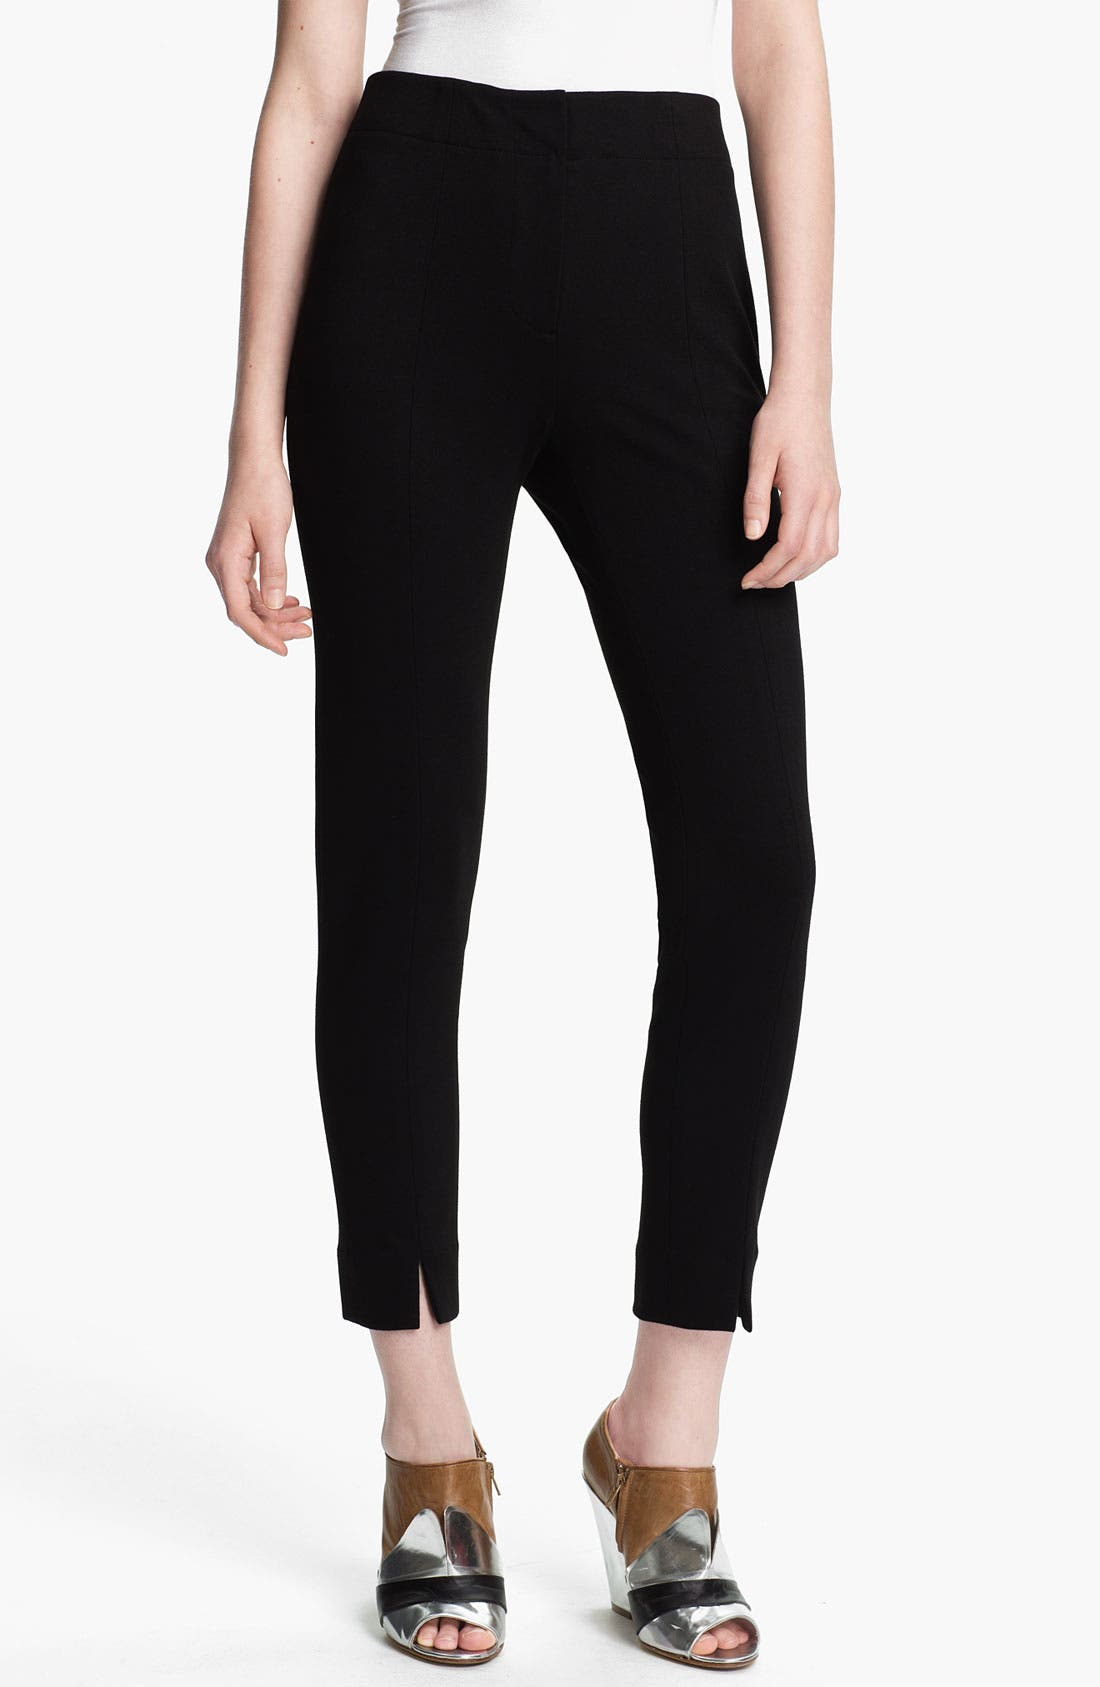 Alternate Image 1 Selected - Tracy Reese Slim Ponte Knit Pants